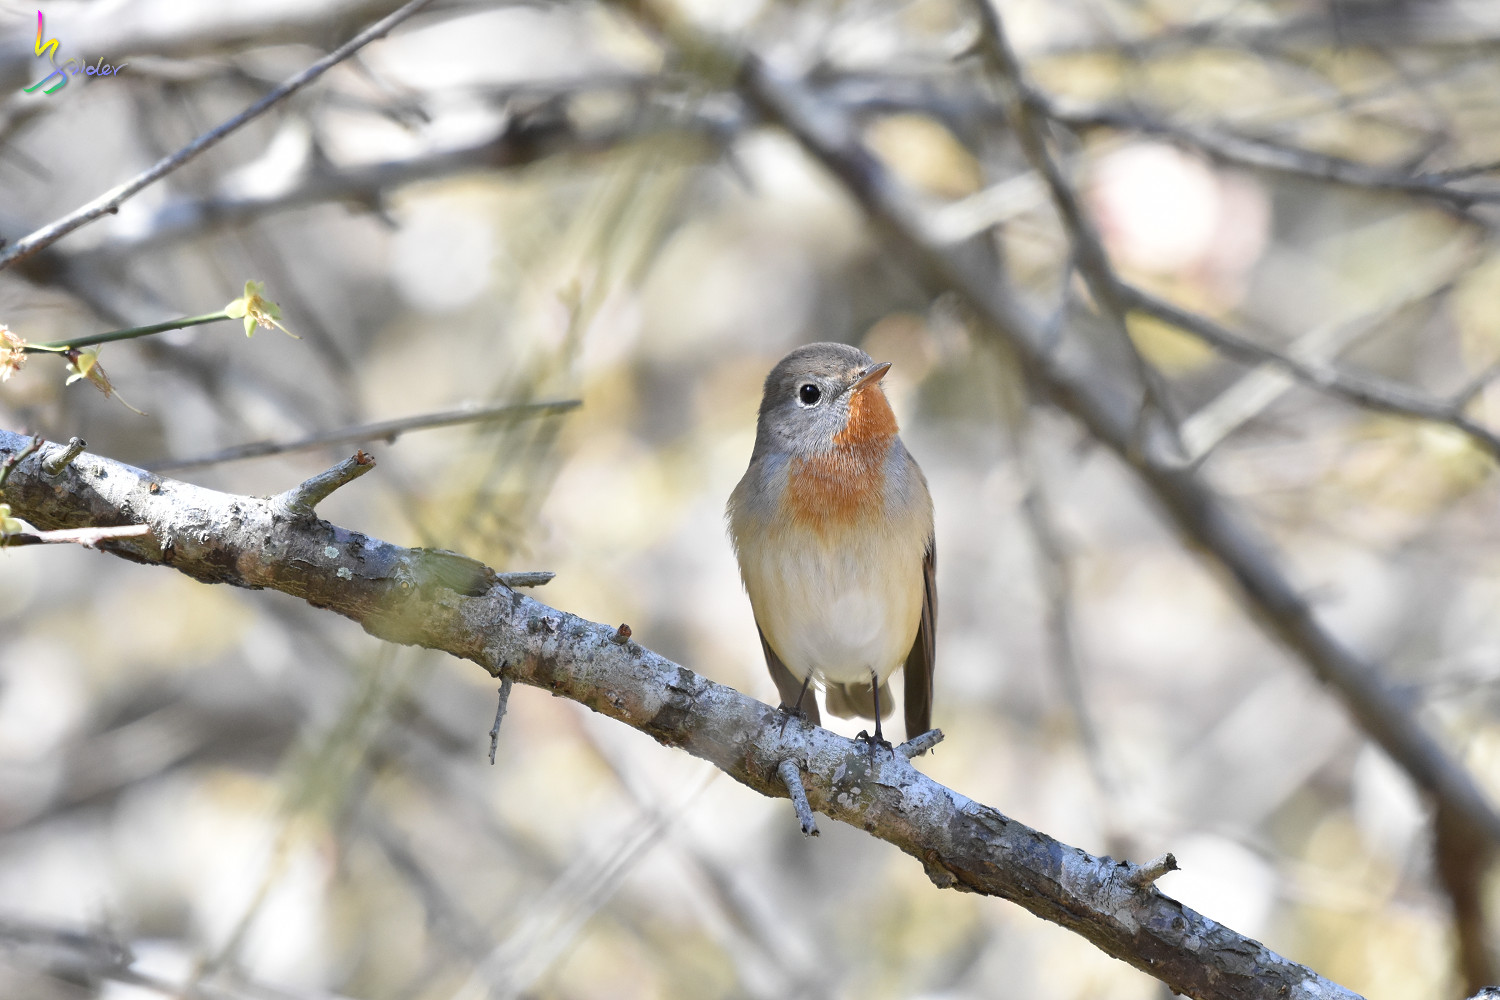 Red-breasted_Flycatcher_6417